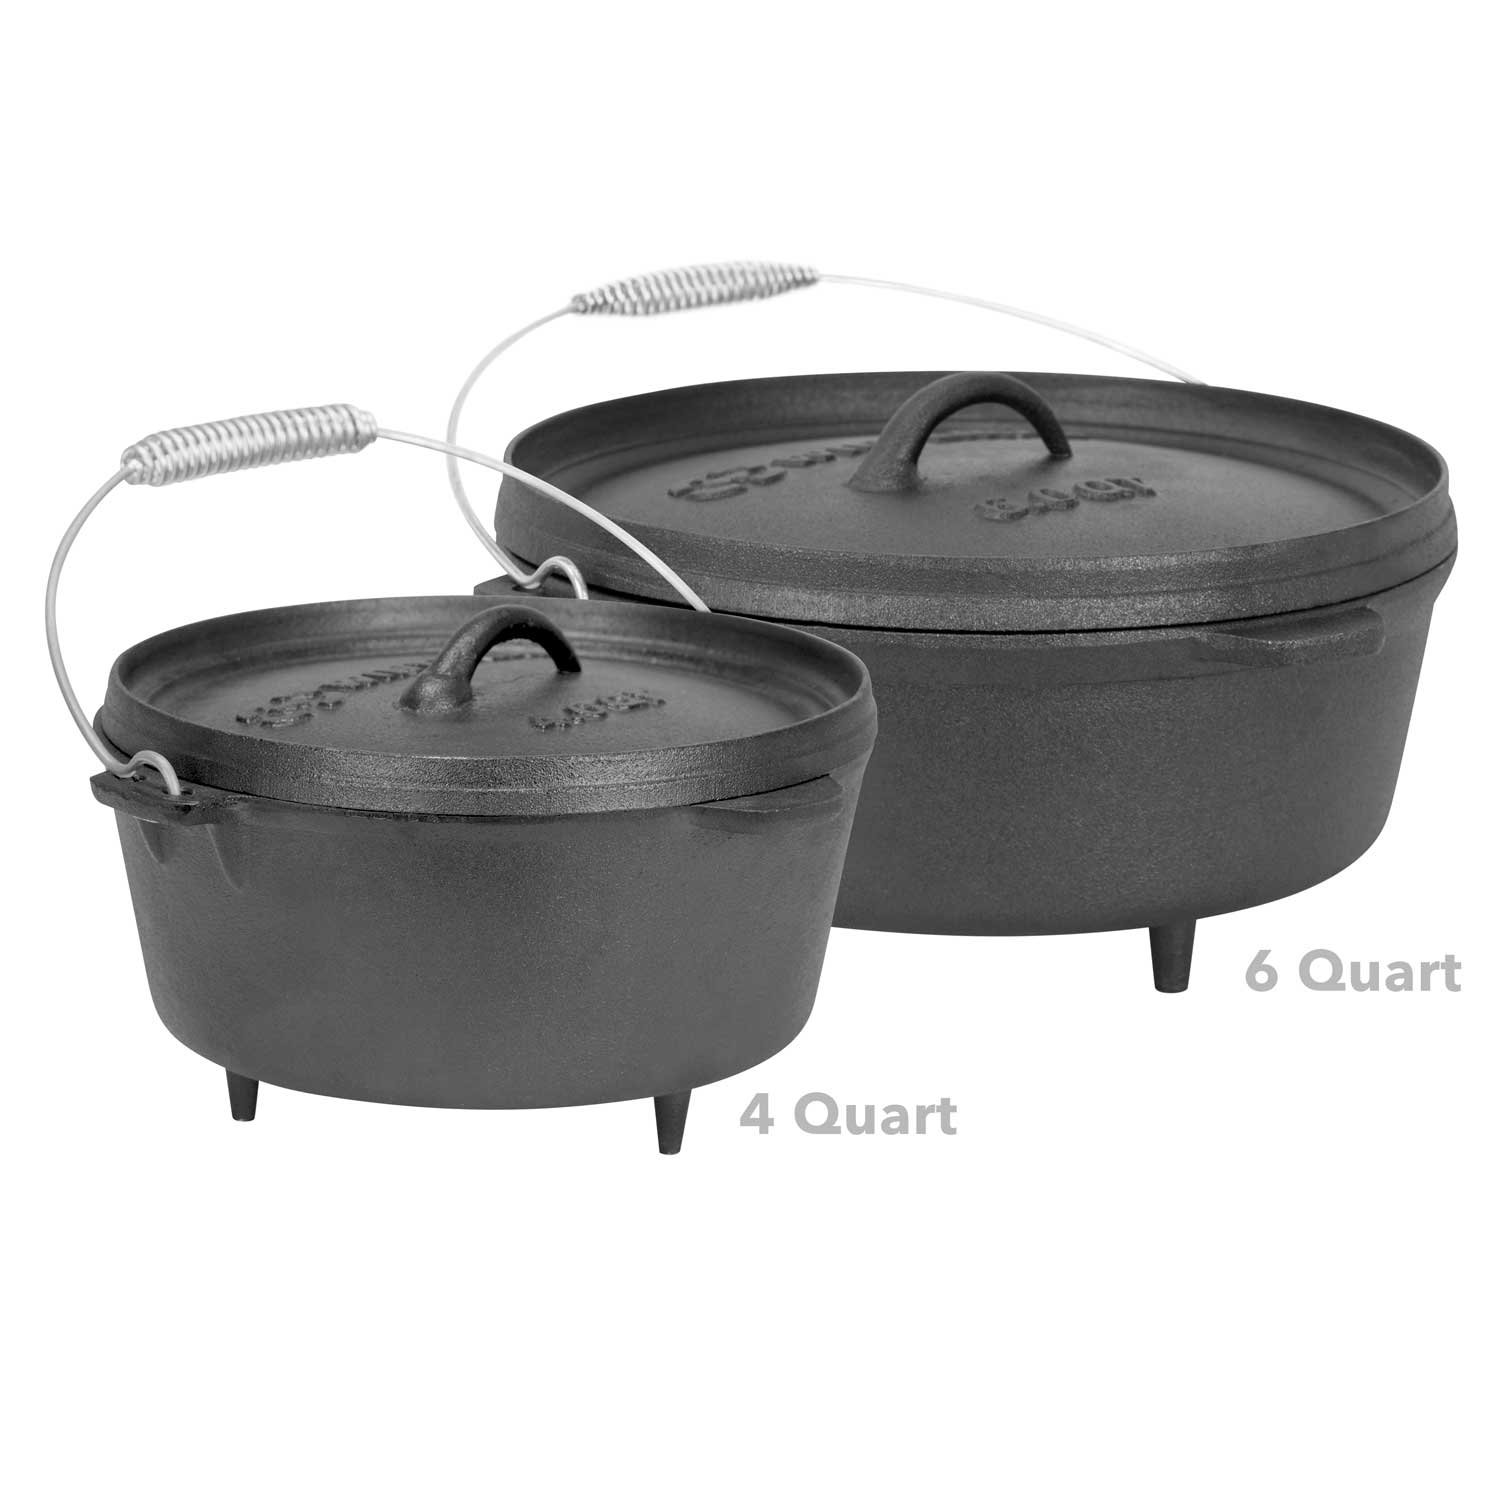 Campfire Cooking Equipment: Amazon.com